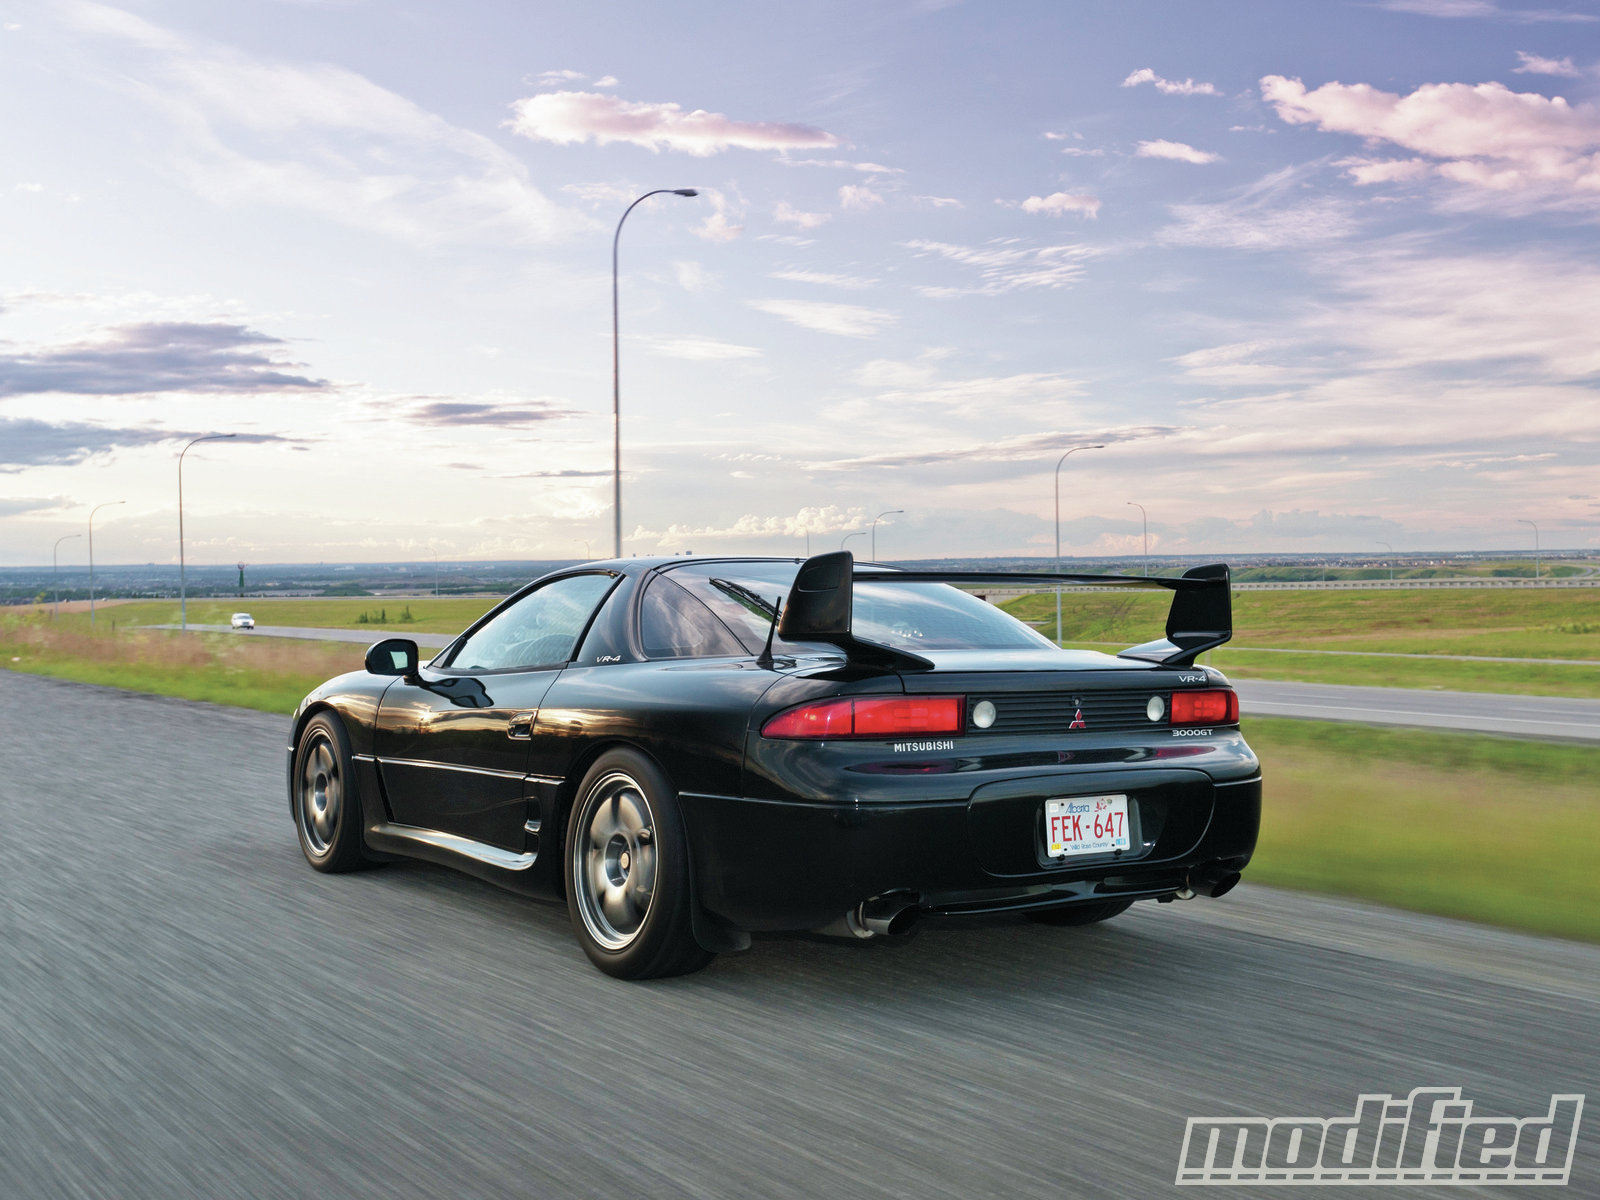 hight resolution of modp 1112 09 1999 mitsubishi 3000gt vr4 rear view